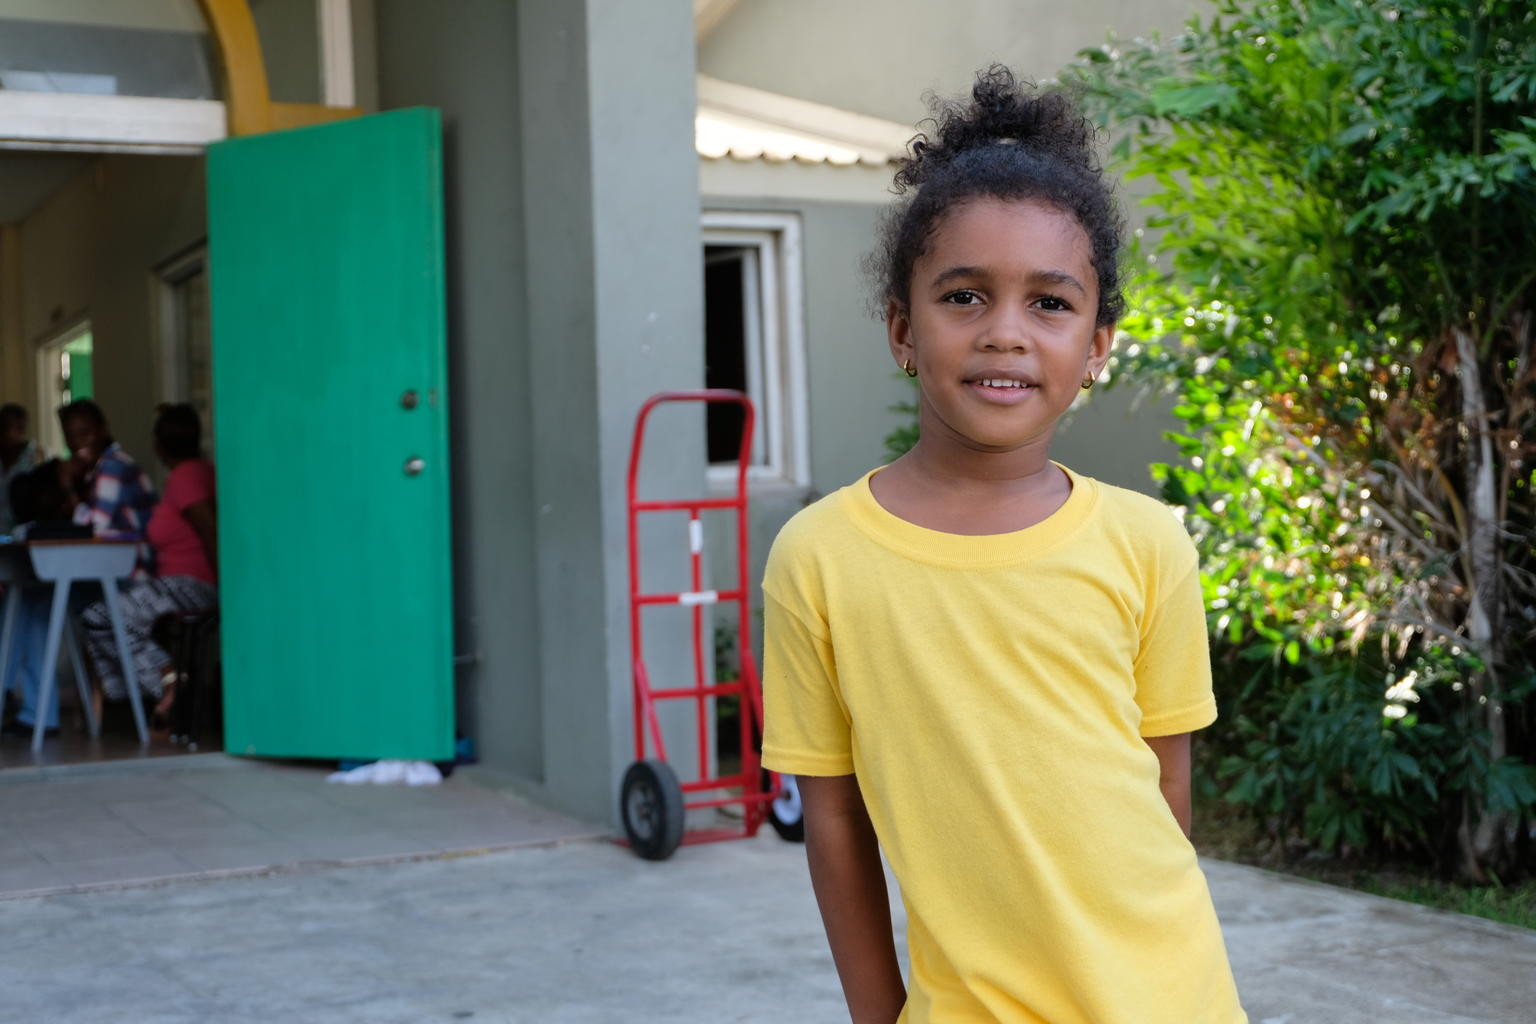 """On 10 September, 6-year-old Bella Rian Jackson smiles outside the National Technical Training Centre in St. John's, capital of the island of Antigua. The education facility currently shelters displaced families from Barbuda whose homes were destroyed by Hurricane Irma. Bella, from Antigua, volunteers at the shelter with her grandparents, sorting and folding donated clothes, cleaning and tidying up the communal areas, and helping to distribute food and supplies. """"I wanted to volunteer with my grandma,"""" Bella says. """"If the children can't come here, they'd [sic] have nowhere to go, and another storm could come,"""" she adds. More than 130 people, including scores of children, sheltered at the centre when the facility was at its busiest. On 6 September 2017, Hurricane Irma, the strongest hurricane ever recorded in the Atlantic, pummelled islands in the Eastern Caribbean. The category 5 storm left a path of destruction – especially on Anguilla, the British Virgin Islands, Barbuda and Turks and Caicos Islands. Some 73,000 people in this area, including 20,000 children, are affected, and at least 132 schools have been damaged. Irma disrupted communication networks in many areas and damaged or destroyed infrastructure, including roads, bridges, hospitals and schools. The island of Barbuda suffered extensive damage during the disaster. Over 90 per cent of its buildings were destroyed, with homes, schools, the island's only hospital, and other infrastructure destroyed or severely damaged. A 2-year-old boy was also killed during the storm, and most of Barbuda's nearly 2,000 residents have been displaced. Officials quickly evacuated the vast majority of the population to Antigua, Barbuda's sister island, ahead of an anticipated category four hurricane (Hurricane Jose) expected to wreak additional destruction on the already devastated island. Antiguans have rallied to support their compatriots, with church and community groups volunteering at shelters hosting"""